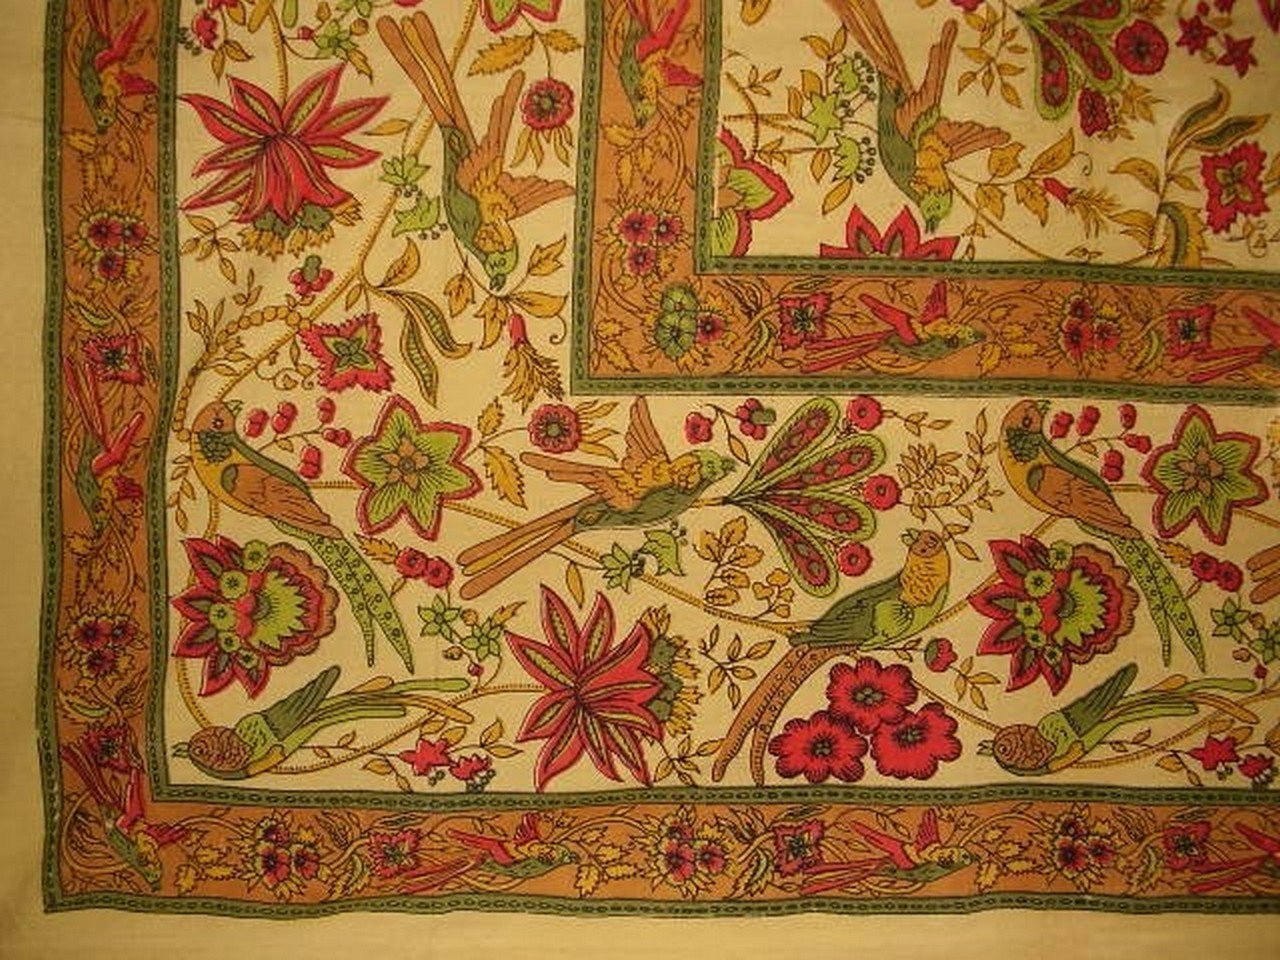 Birds in Paradise Tapestry Cotton Bedspread 104'' x 88'' Full Mustard Brown